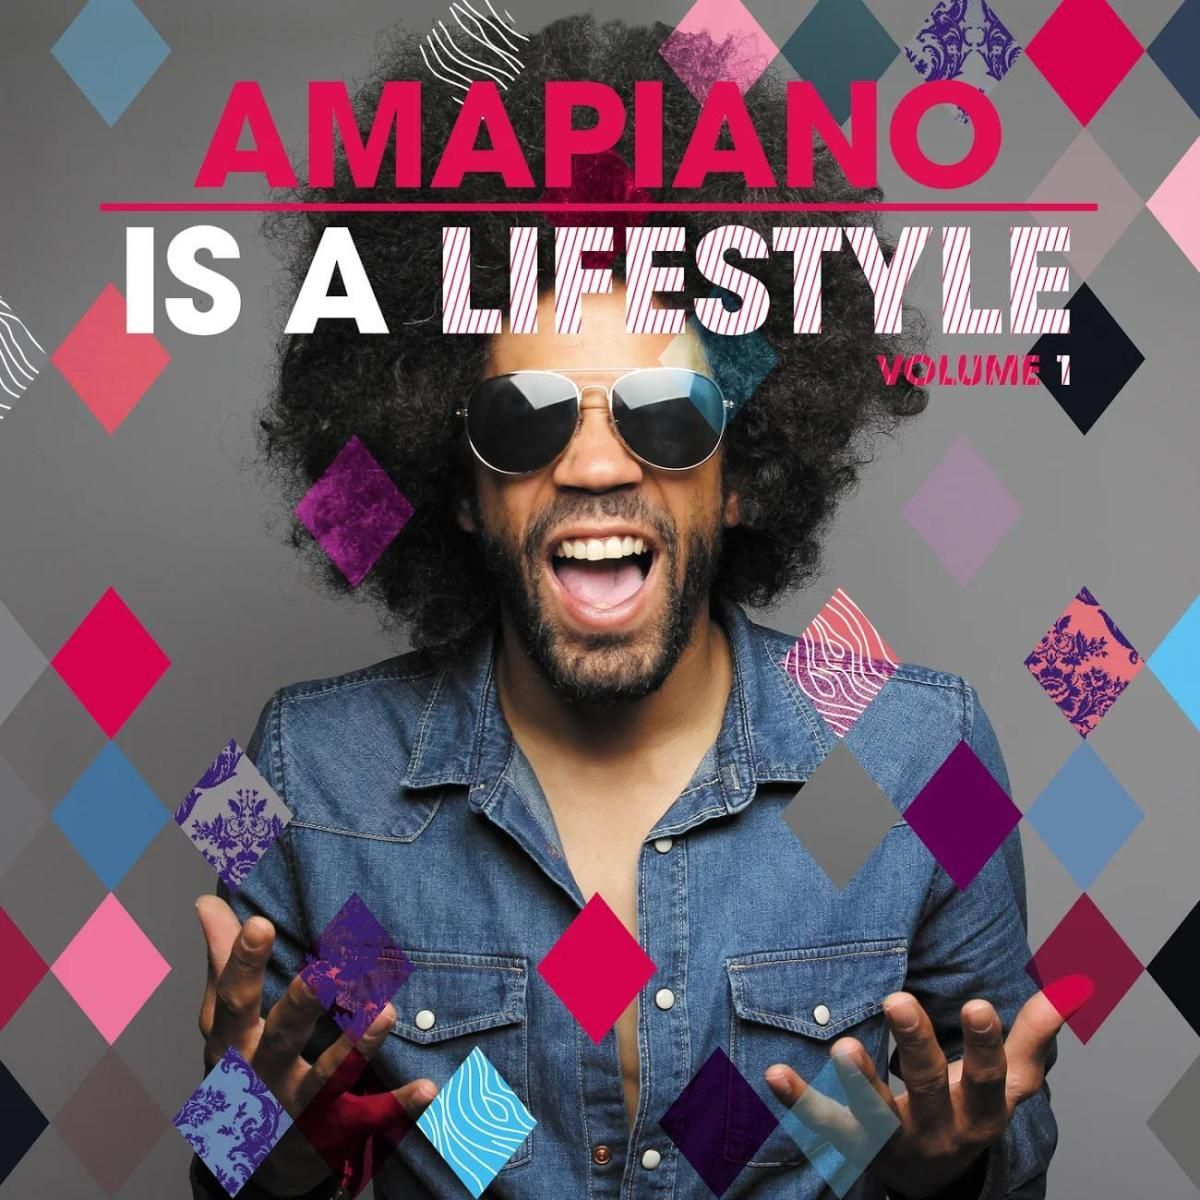 Va Amapiano Is A Lifestyle Vol 1 Entertainment Music Deep House Music House Music